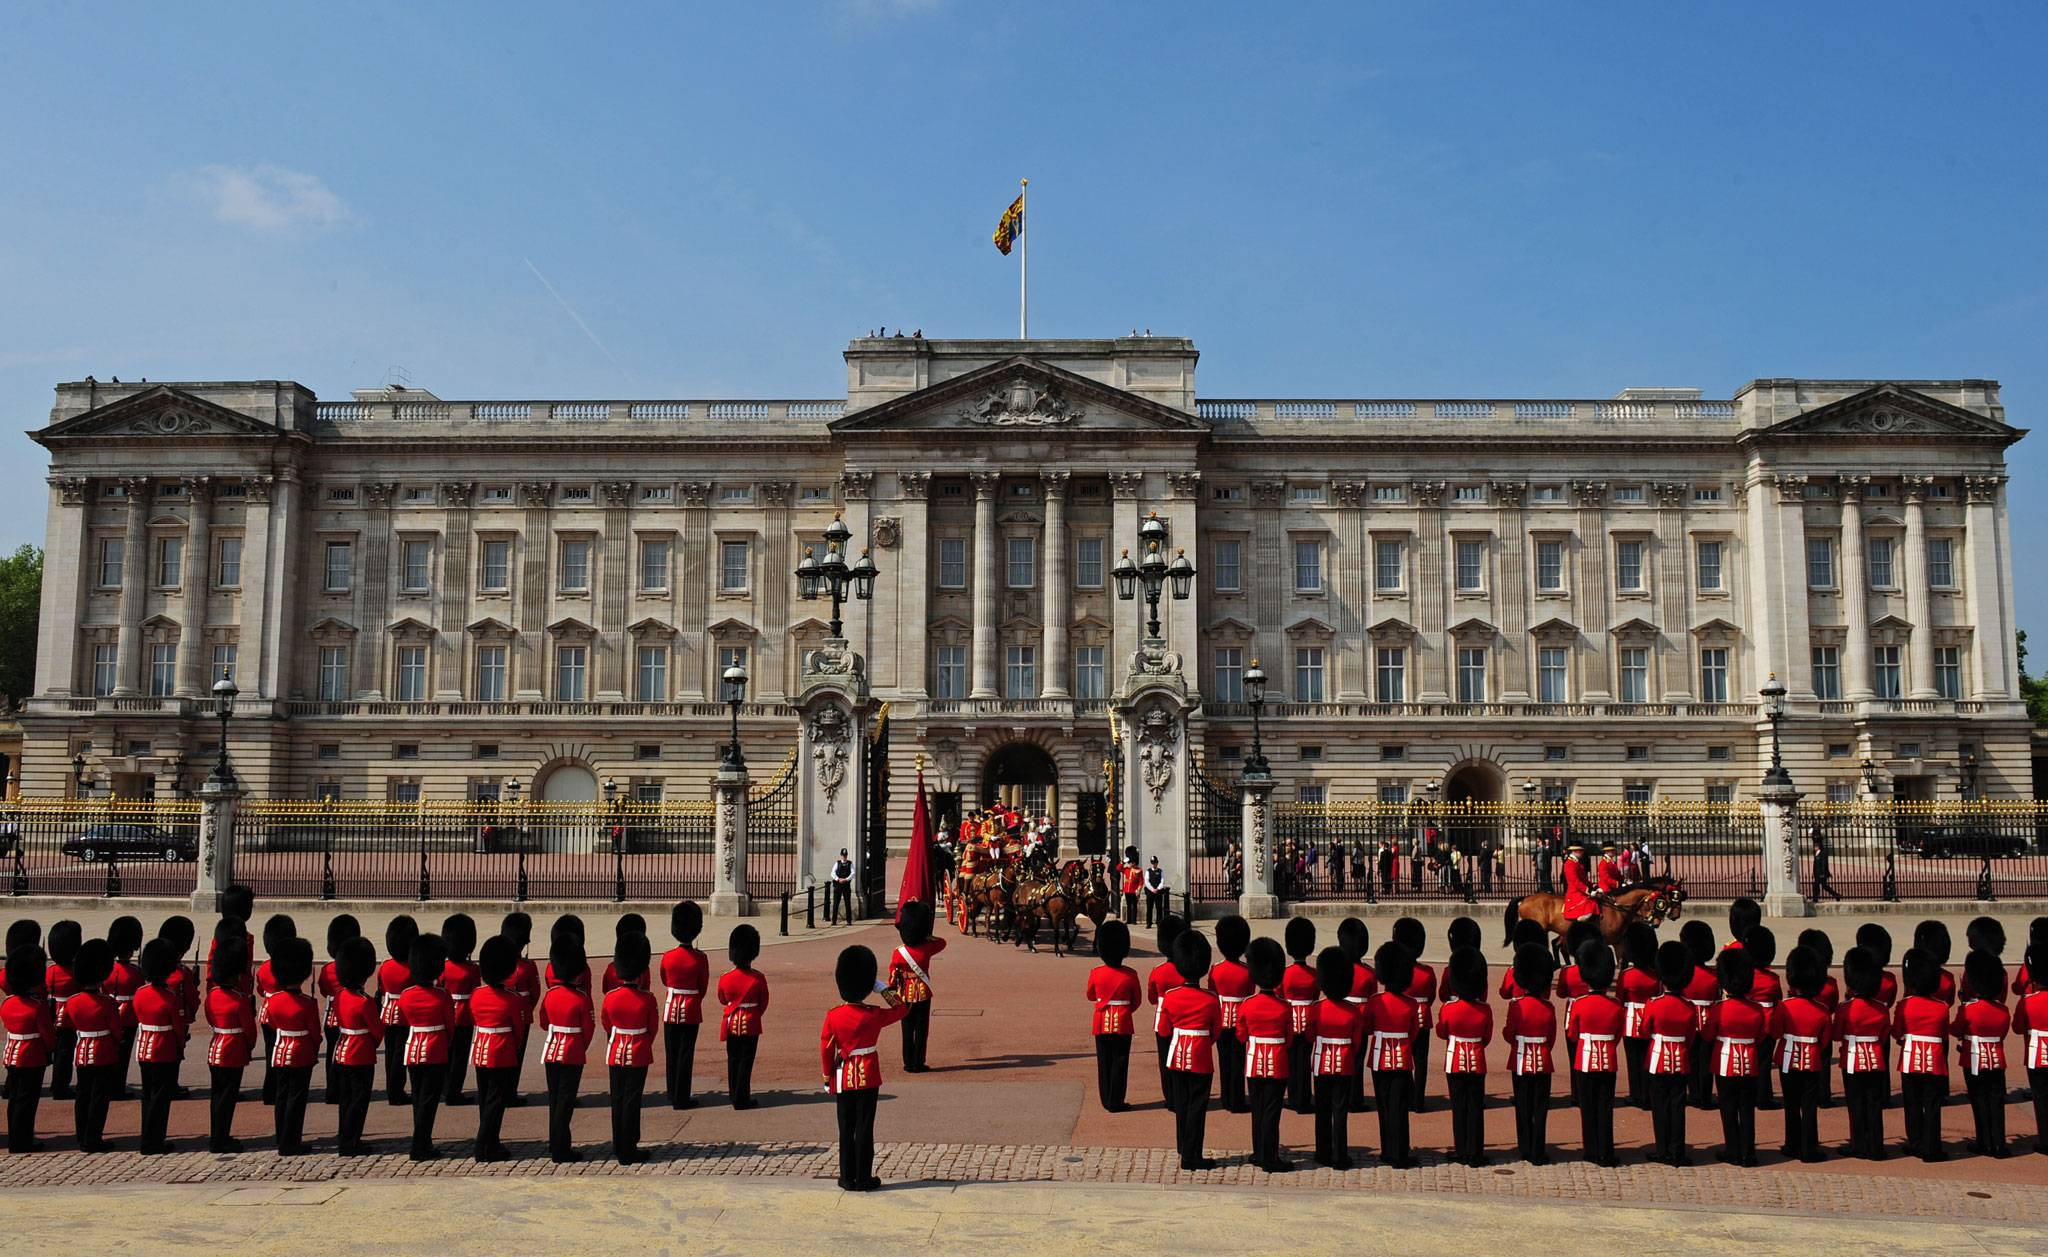 Buckingham palace, Londres